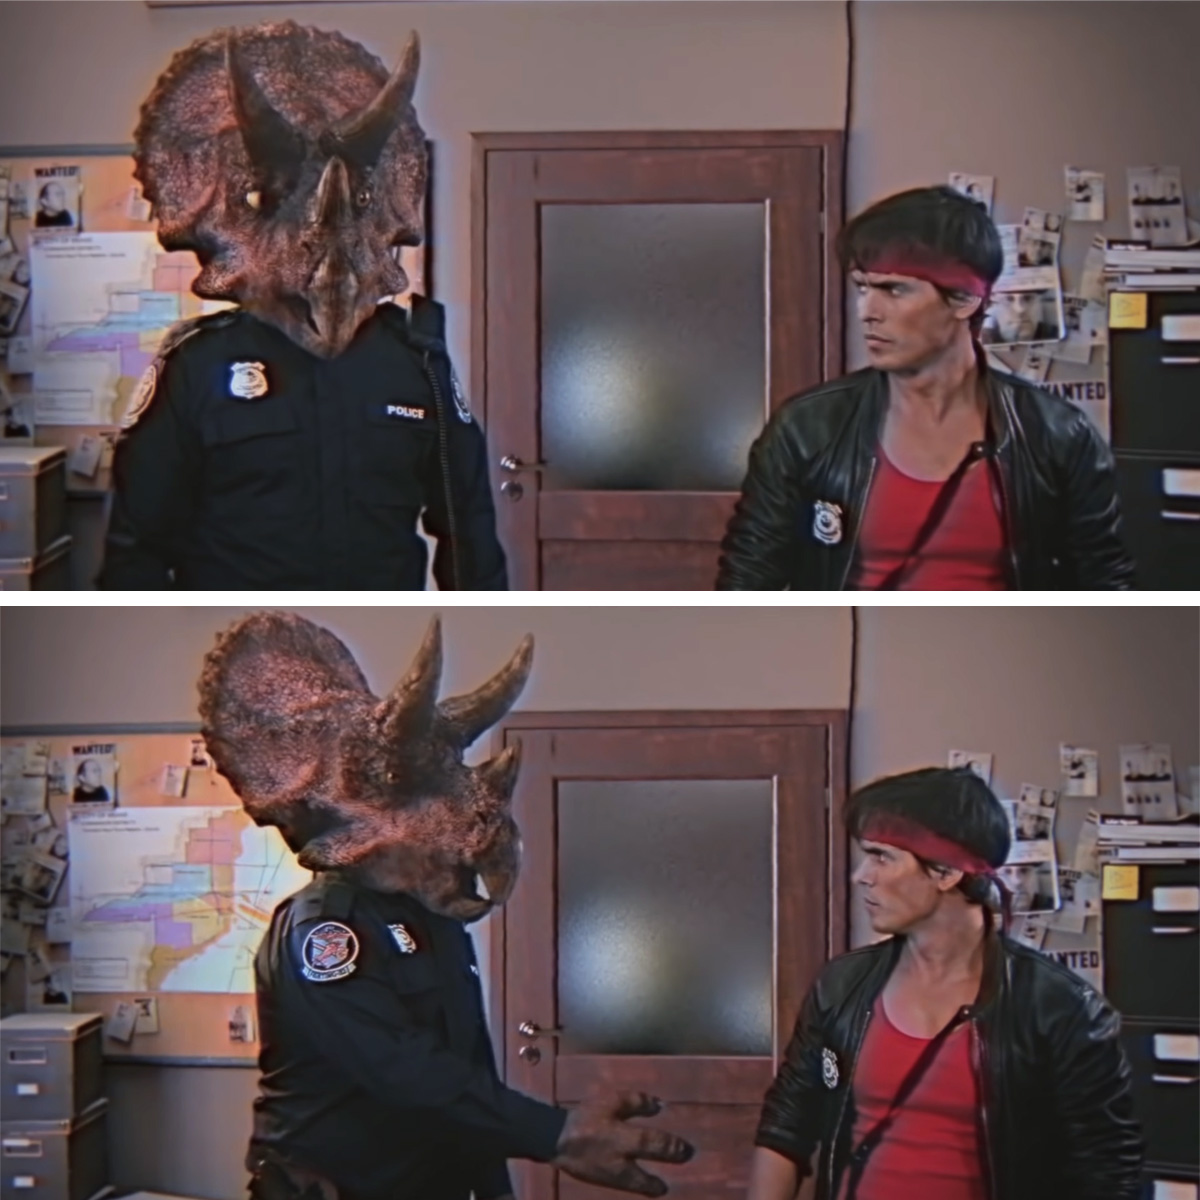 2 screen shots from Kung Fury. Both feature a man with a triceratops head, and a man in red shirt, leather jacket, and long red headband.